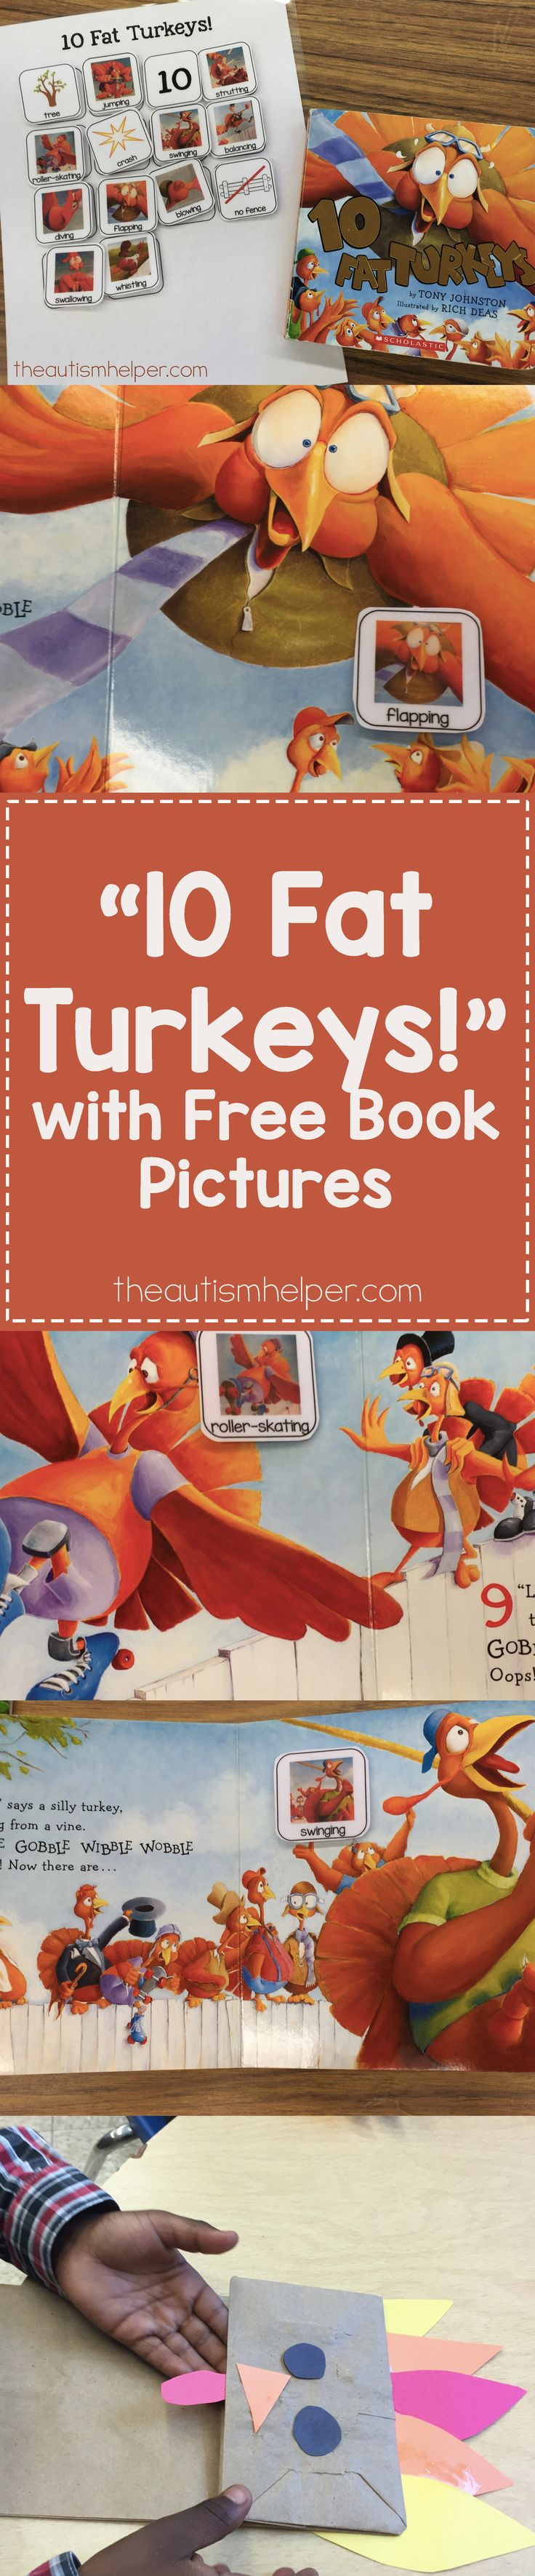 """10 Fat Turkeys"" is visually exciting & pairs well with activities. Get your kiddos gobbling & flapping with this great book! From theautismhelper.com #theautismhelper"